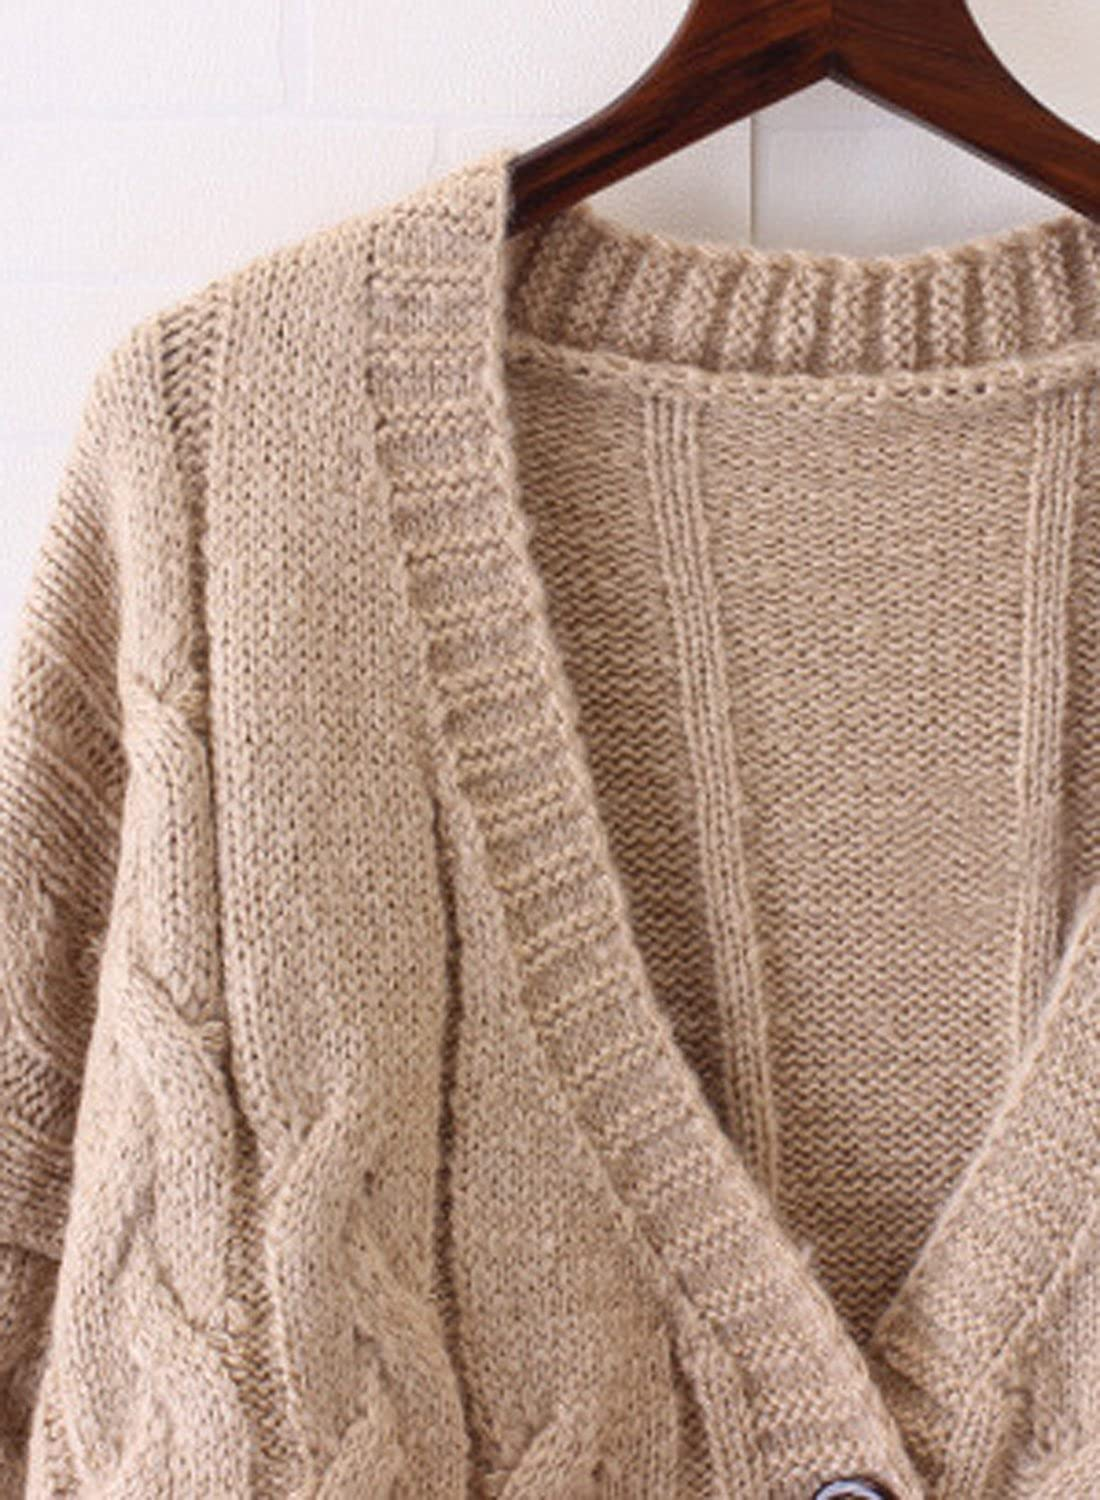 5c73d47647 Futurino Women s Long Sleeve Chunky Aran Cable Knitted Grandad Cardigan  Sweaters at Amazon Women s Clothing store